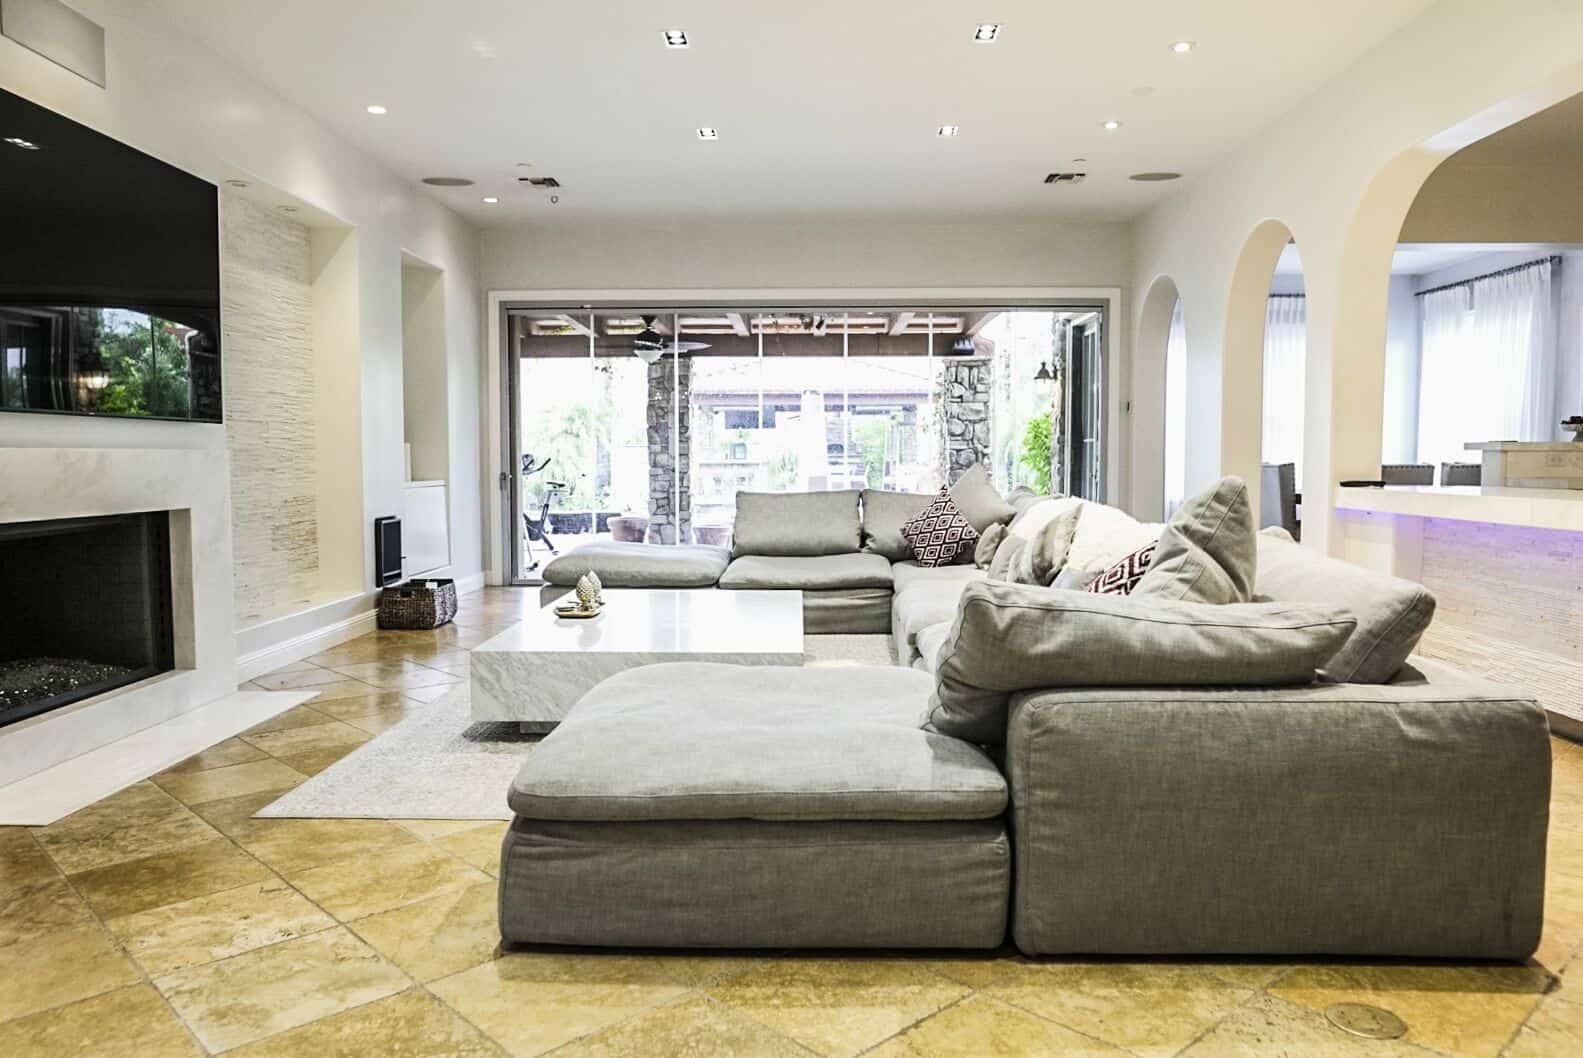 The house's family living space offers a large comfy sofa set and a large marble center table set on top of an area rug covering the beige tiles flooring. There's a fireplace and a large flat-screen TV as well. Images courtesy of Toptenrealestatedeals.com.